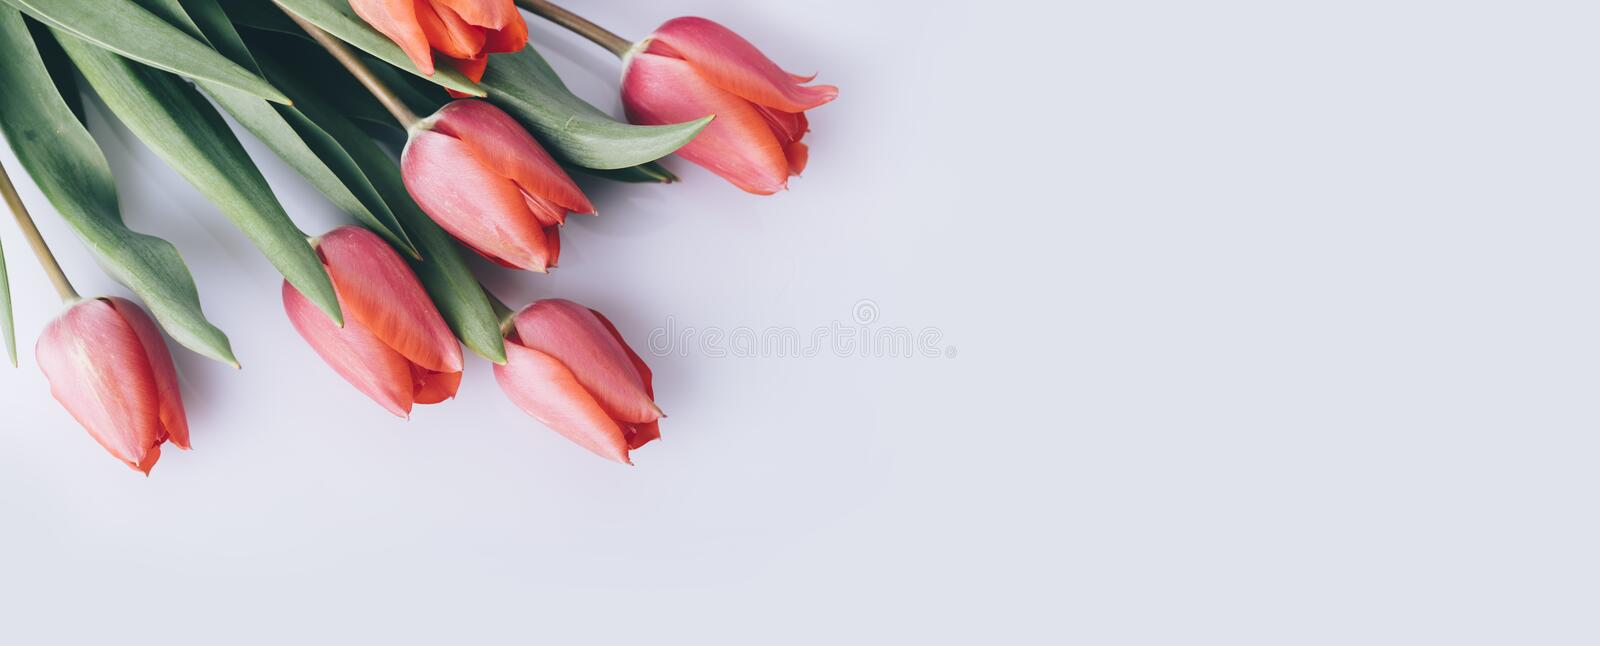 Red tulip flower on natural white background from above. Spring bud bouquet creative frame design royalty free stock photography